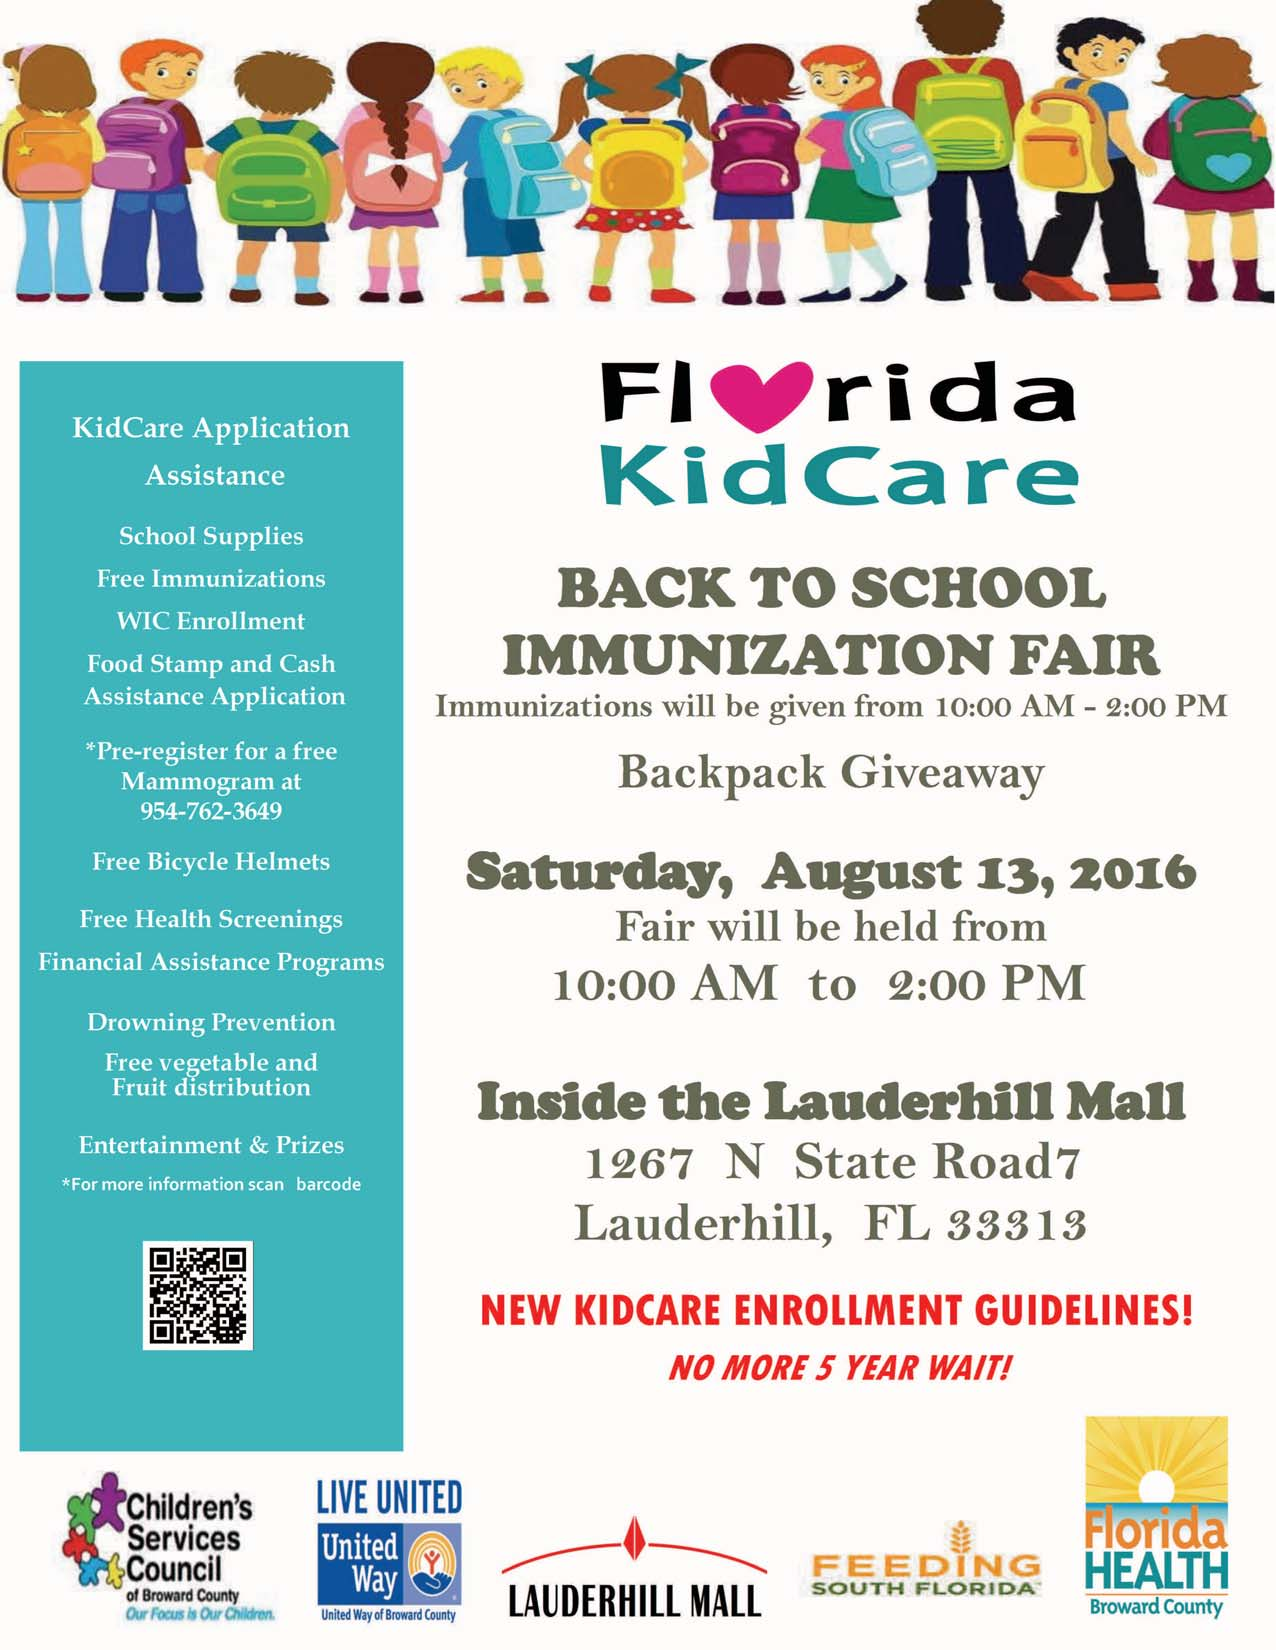 Florida KidCare Back to School Immunization Fair